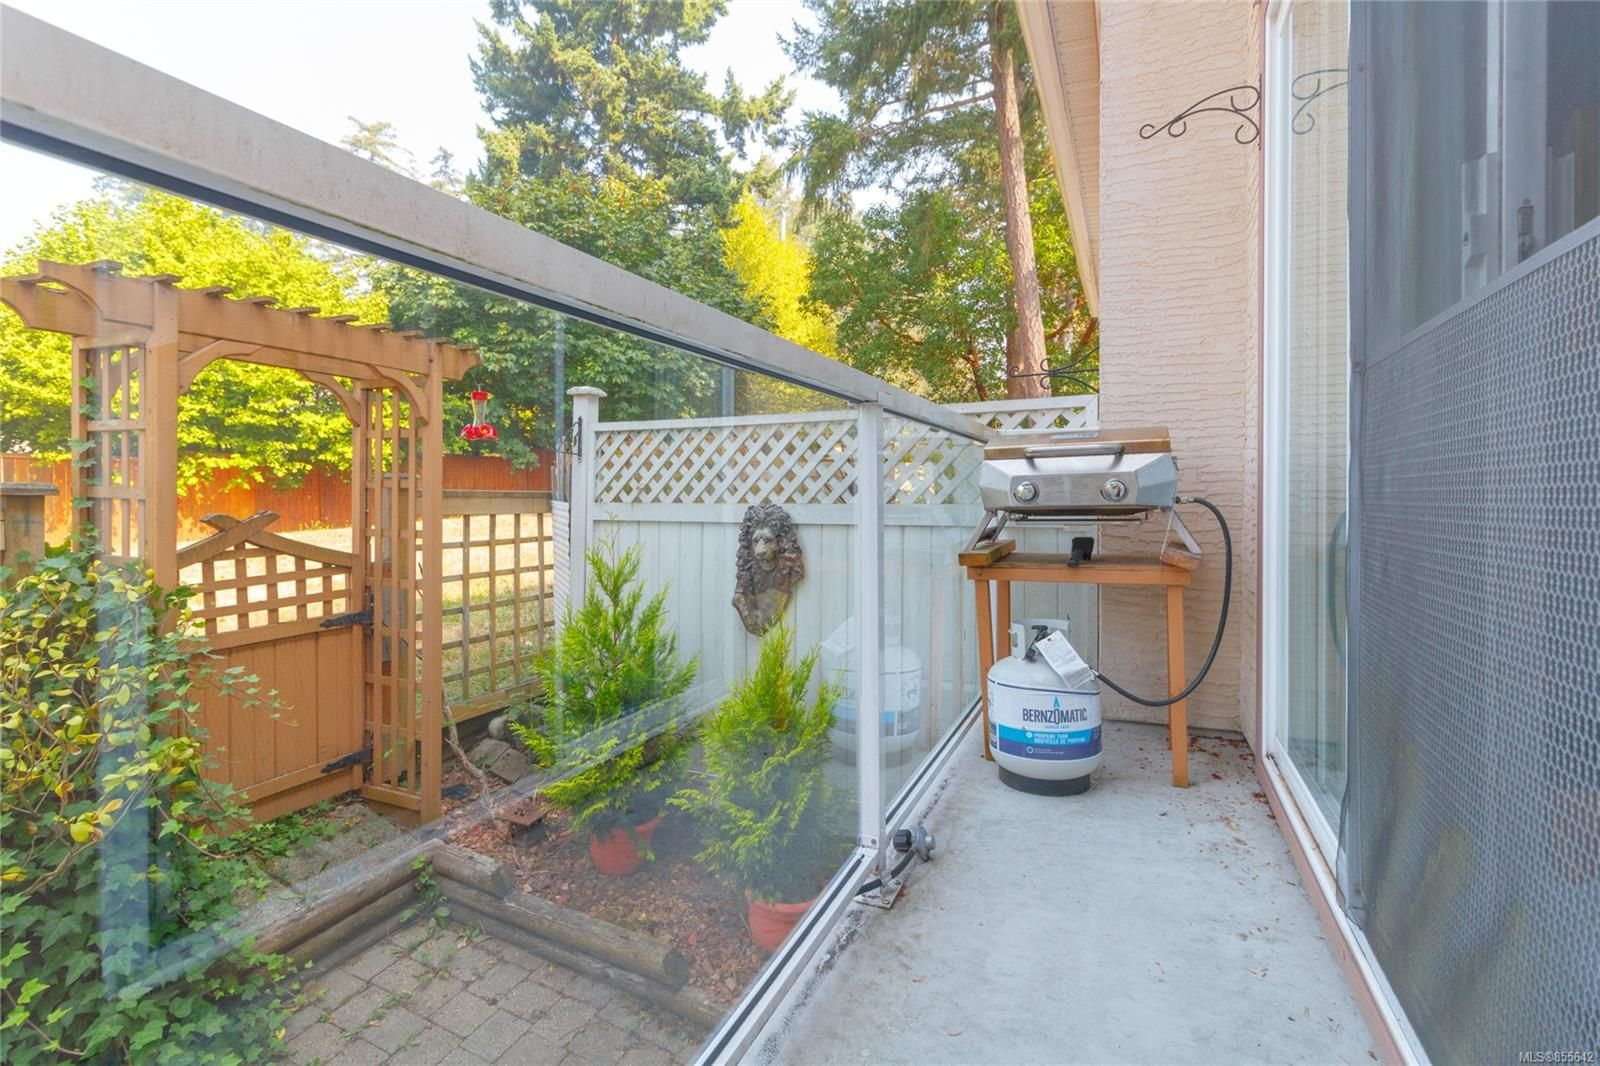 Photo 22: Photos: 52 14 Erskine Lane in : VR Hospital Row/Townhouse for sale (View Royal)  : MLS®# 855642